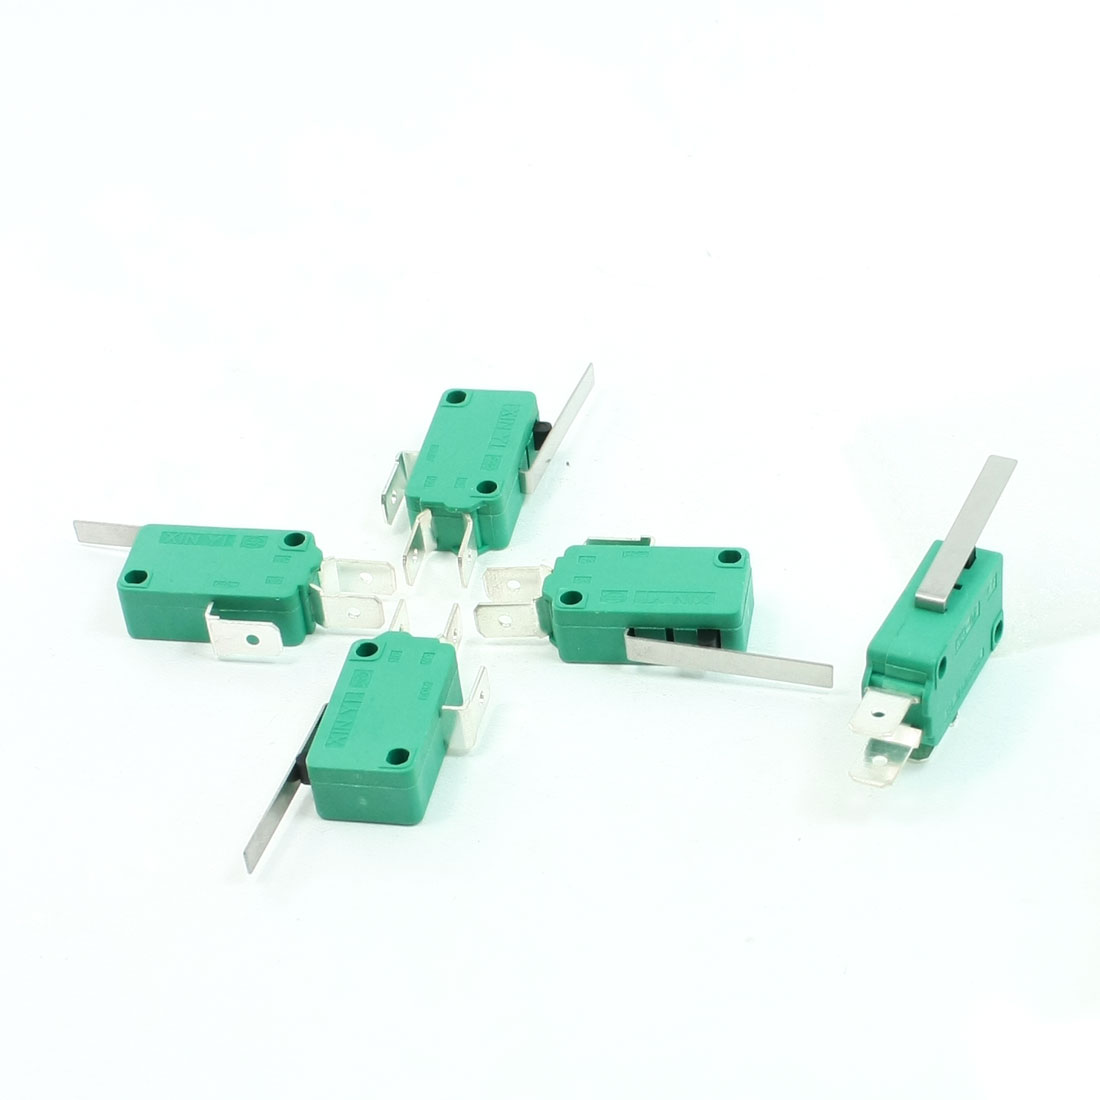 5 Pcs AC 250V 16A SPDT Short Straight Hinge Lever Miniature Micro Switch Green